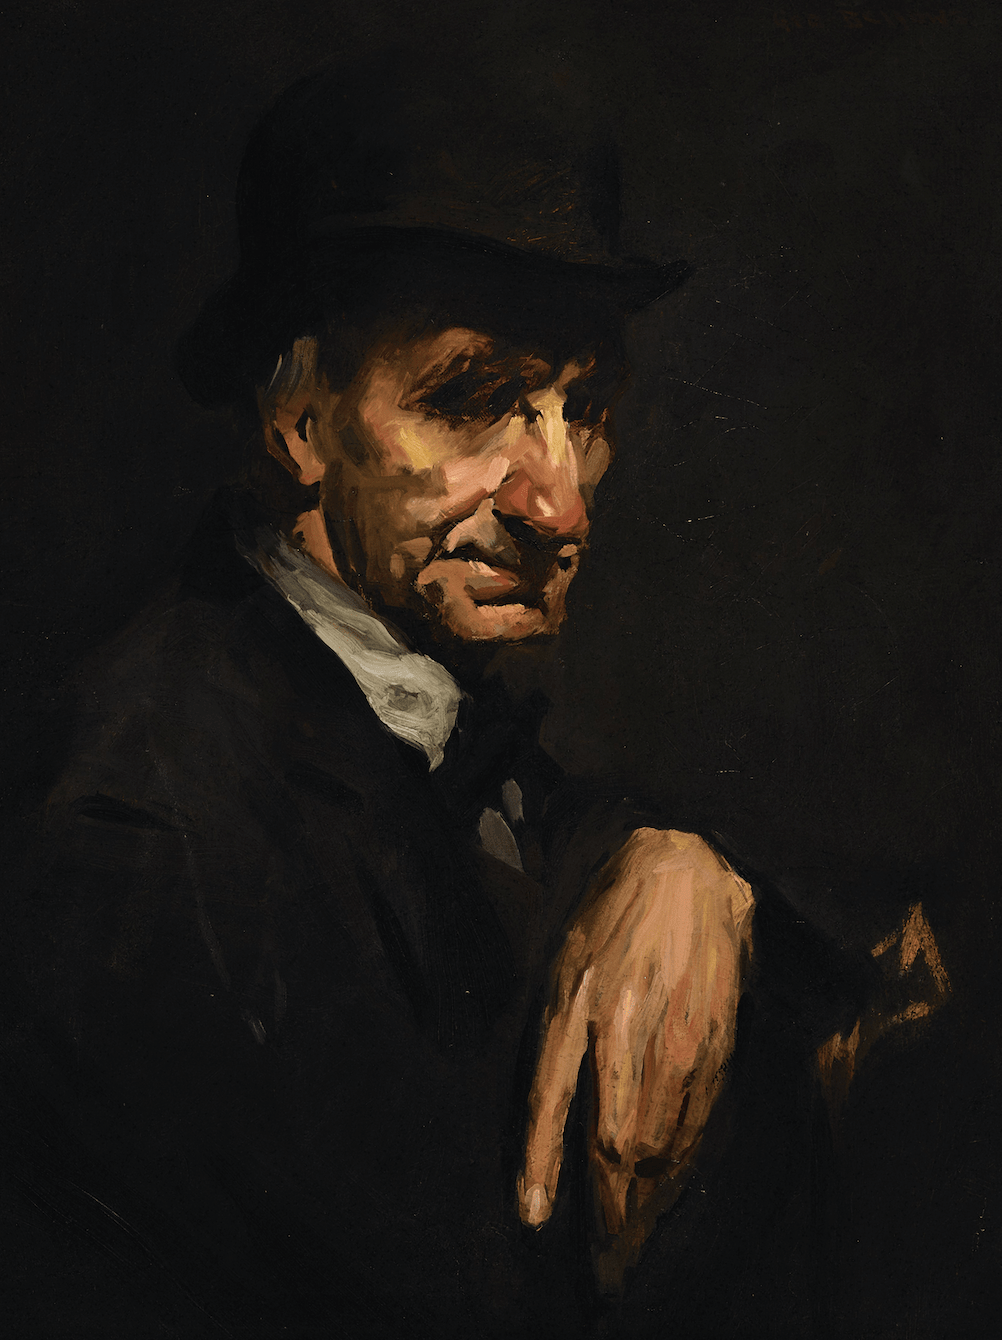 George Wesley Bellows' portrait of a man featuring a dark palette and highlighting the man's red nose.